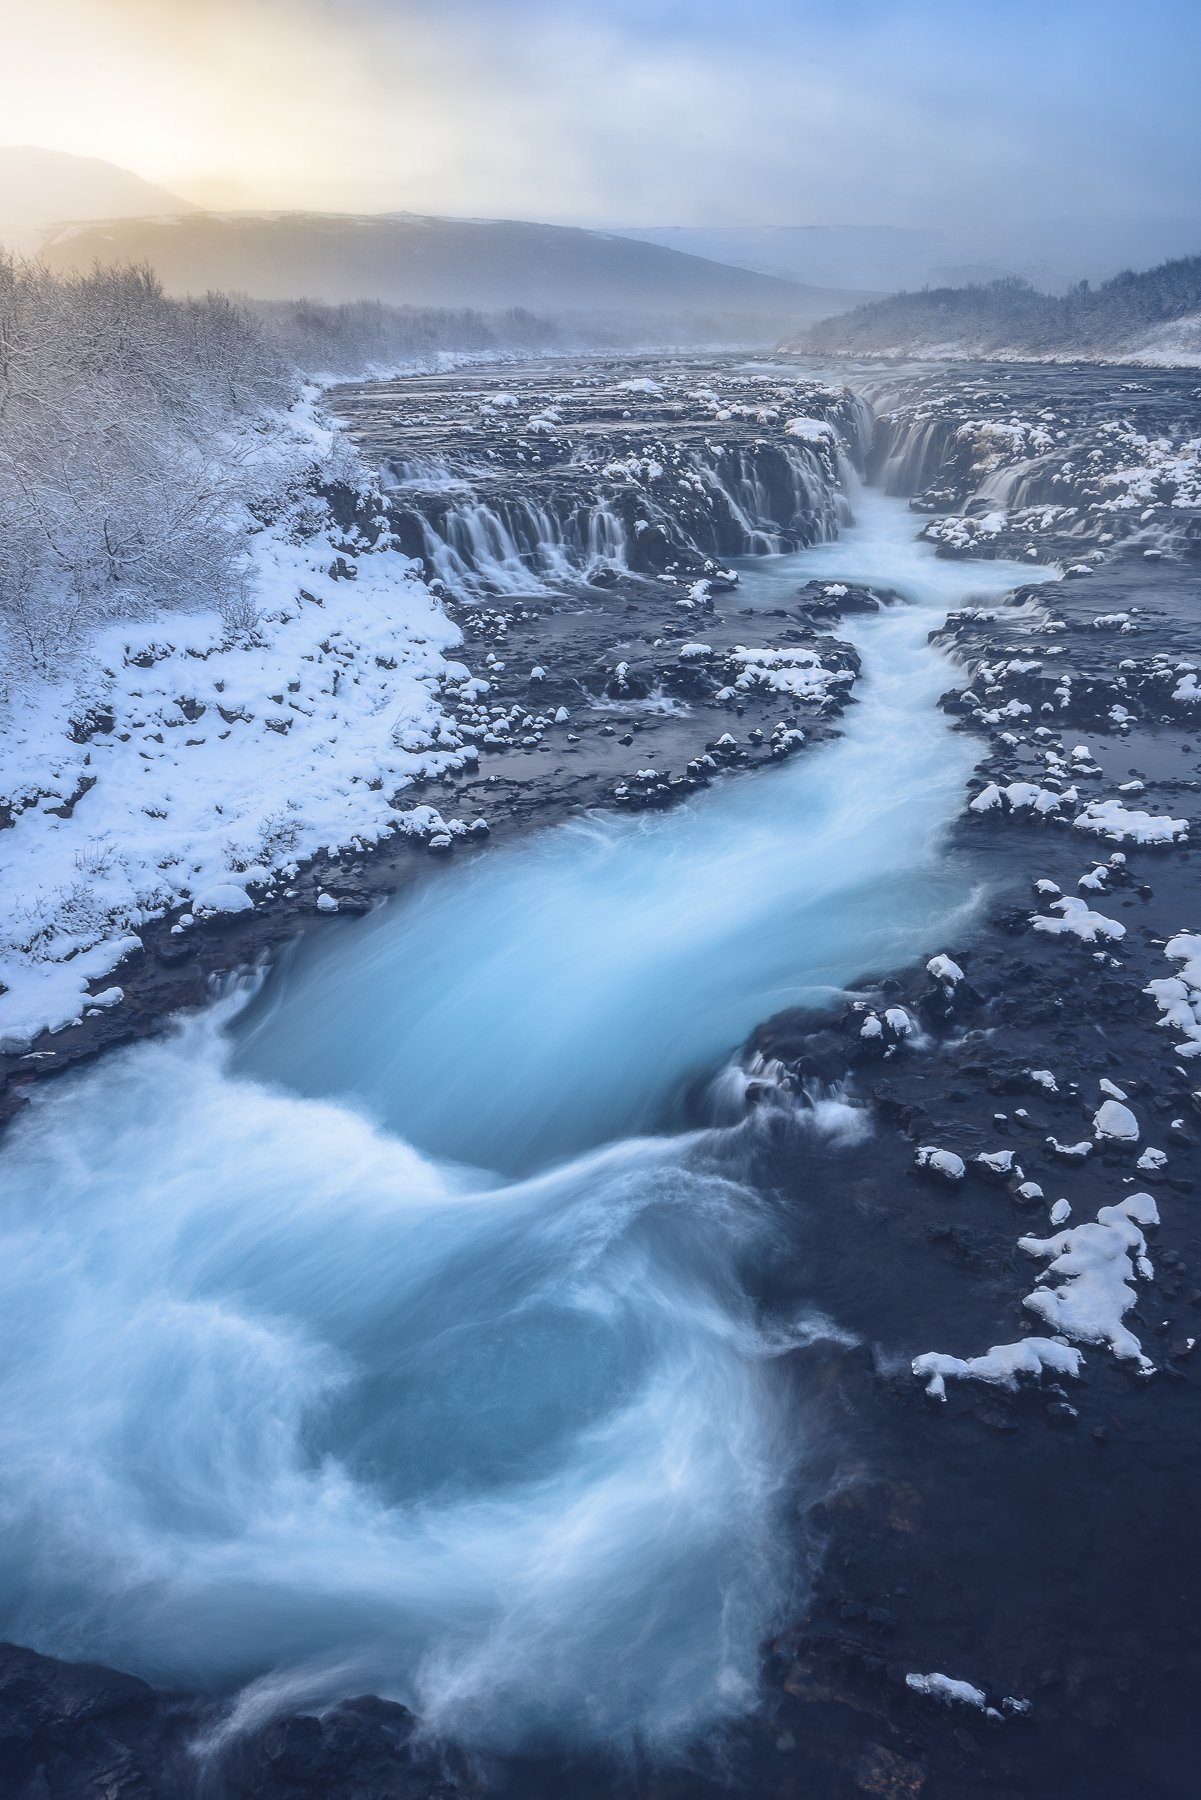 Iceland, waterfall, river, snow, frozen, ice, sunset, Fuster Salamero Eduardo